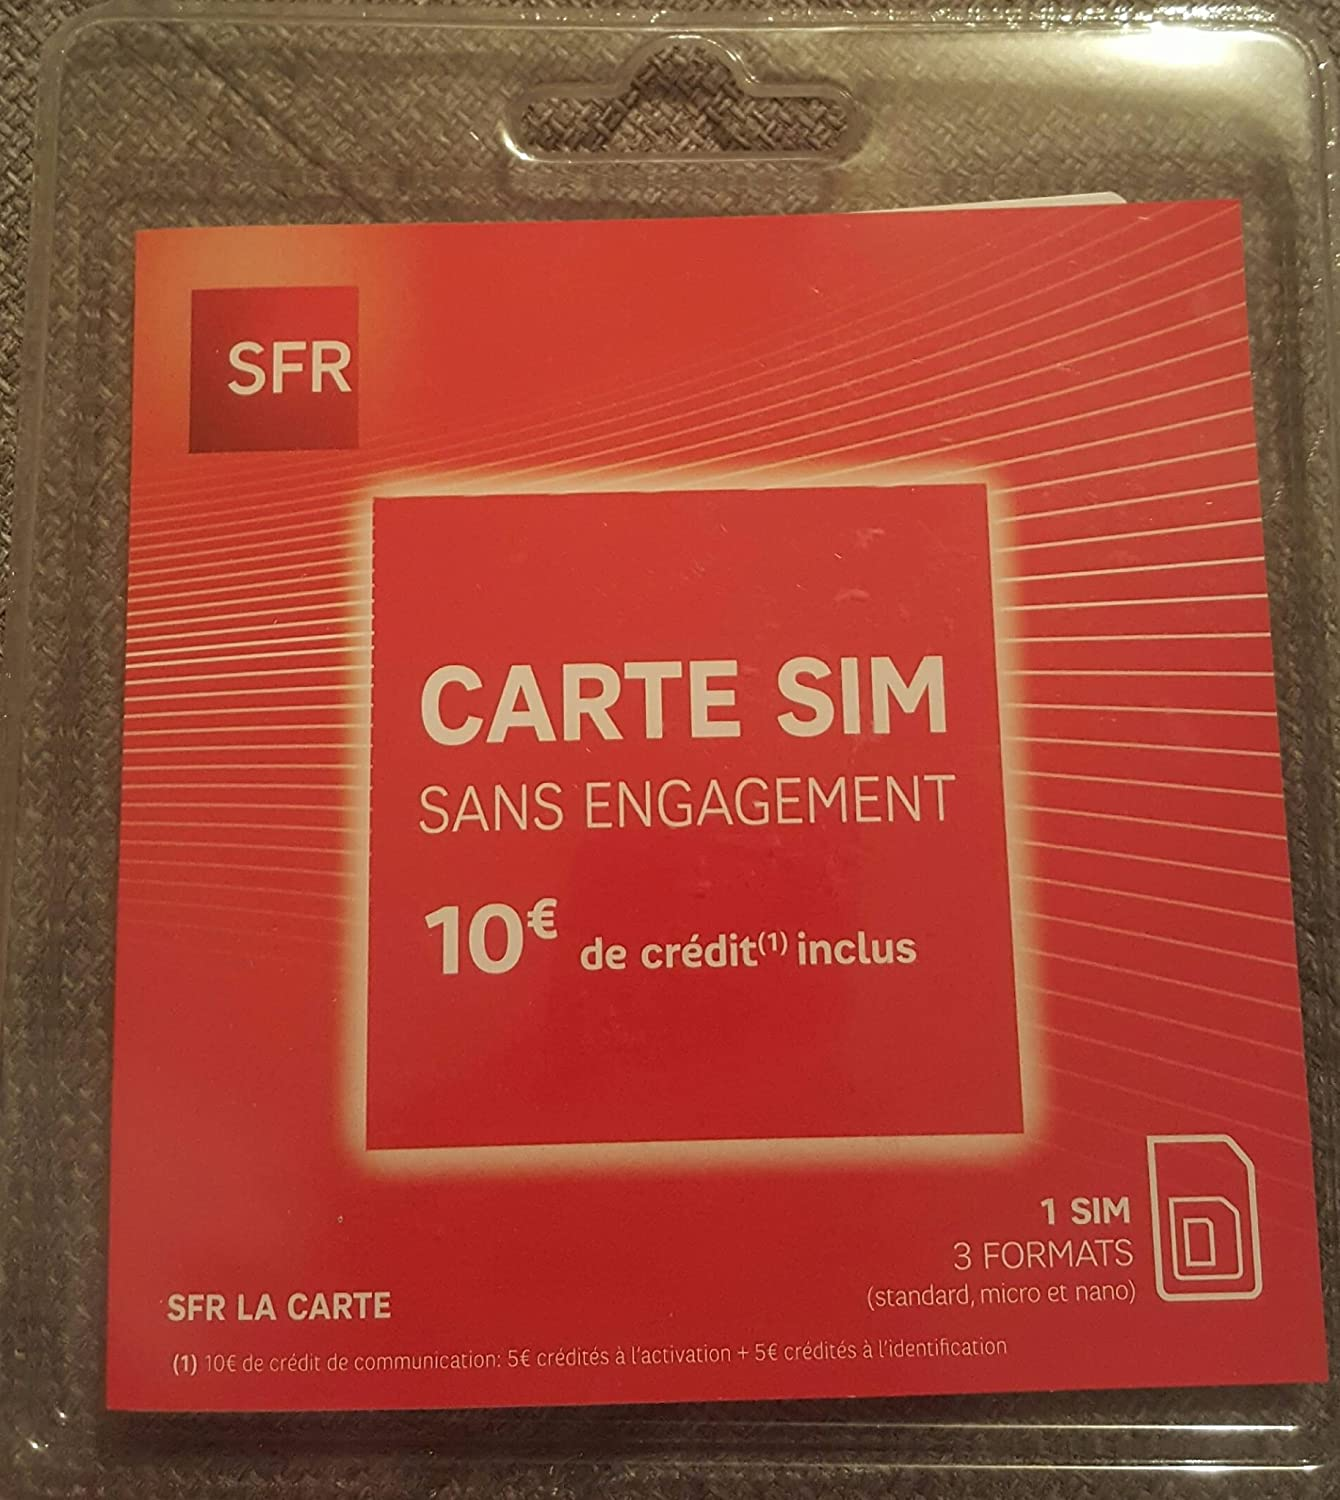 sfr red carte sim gratuite Prepaid SIM card pa83 ® SFR Free 5 & # x20AC; available: Amazon.co